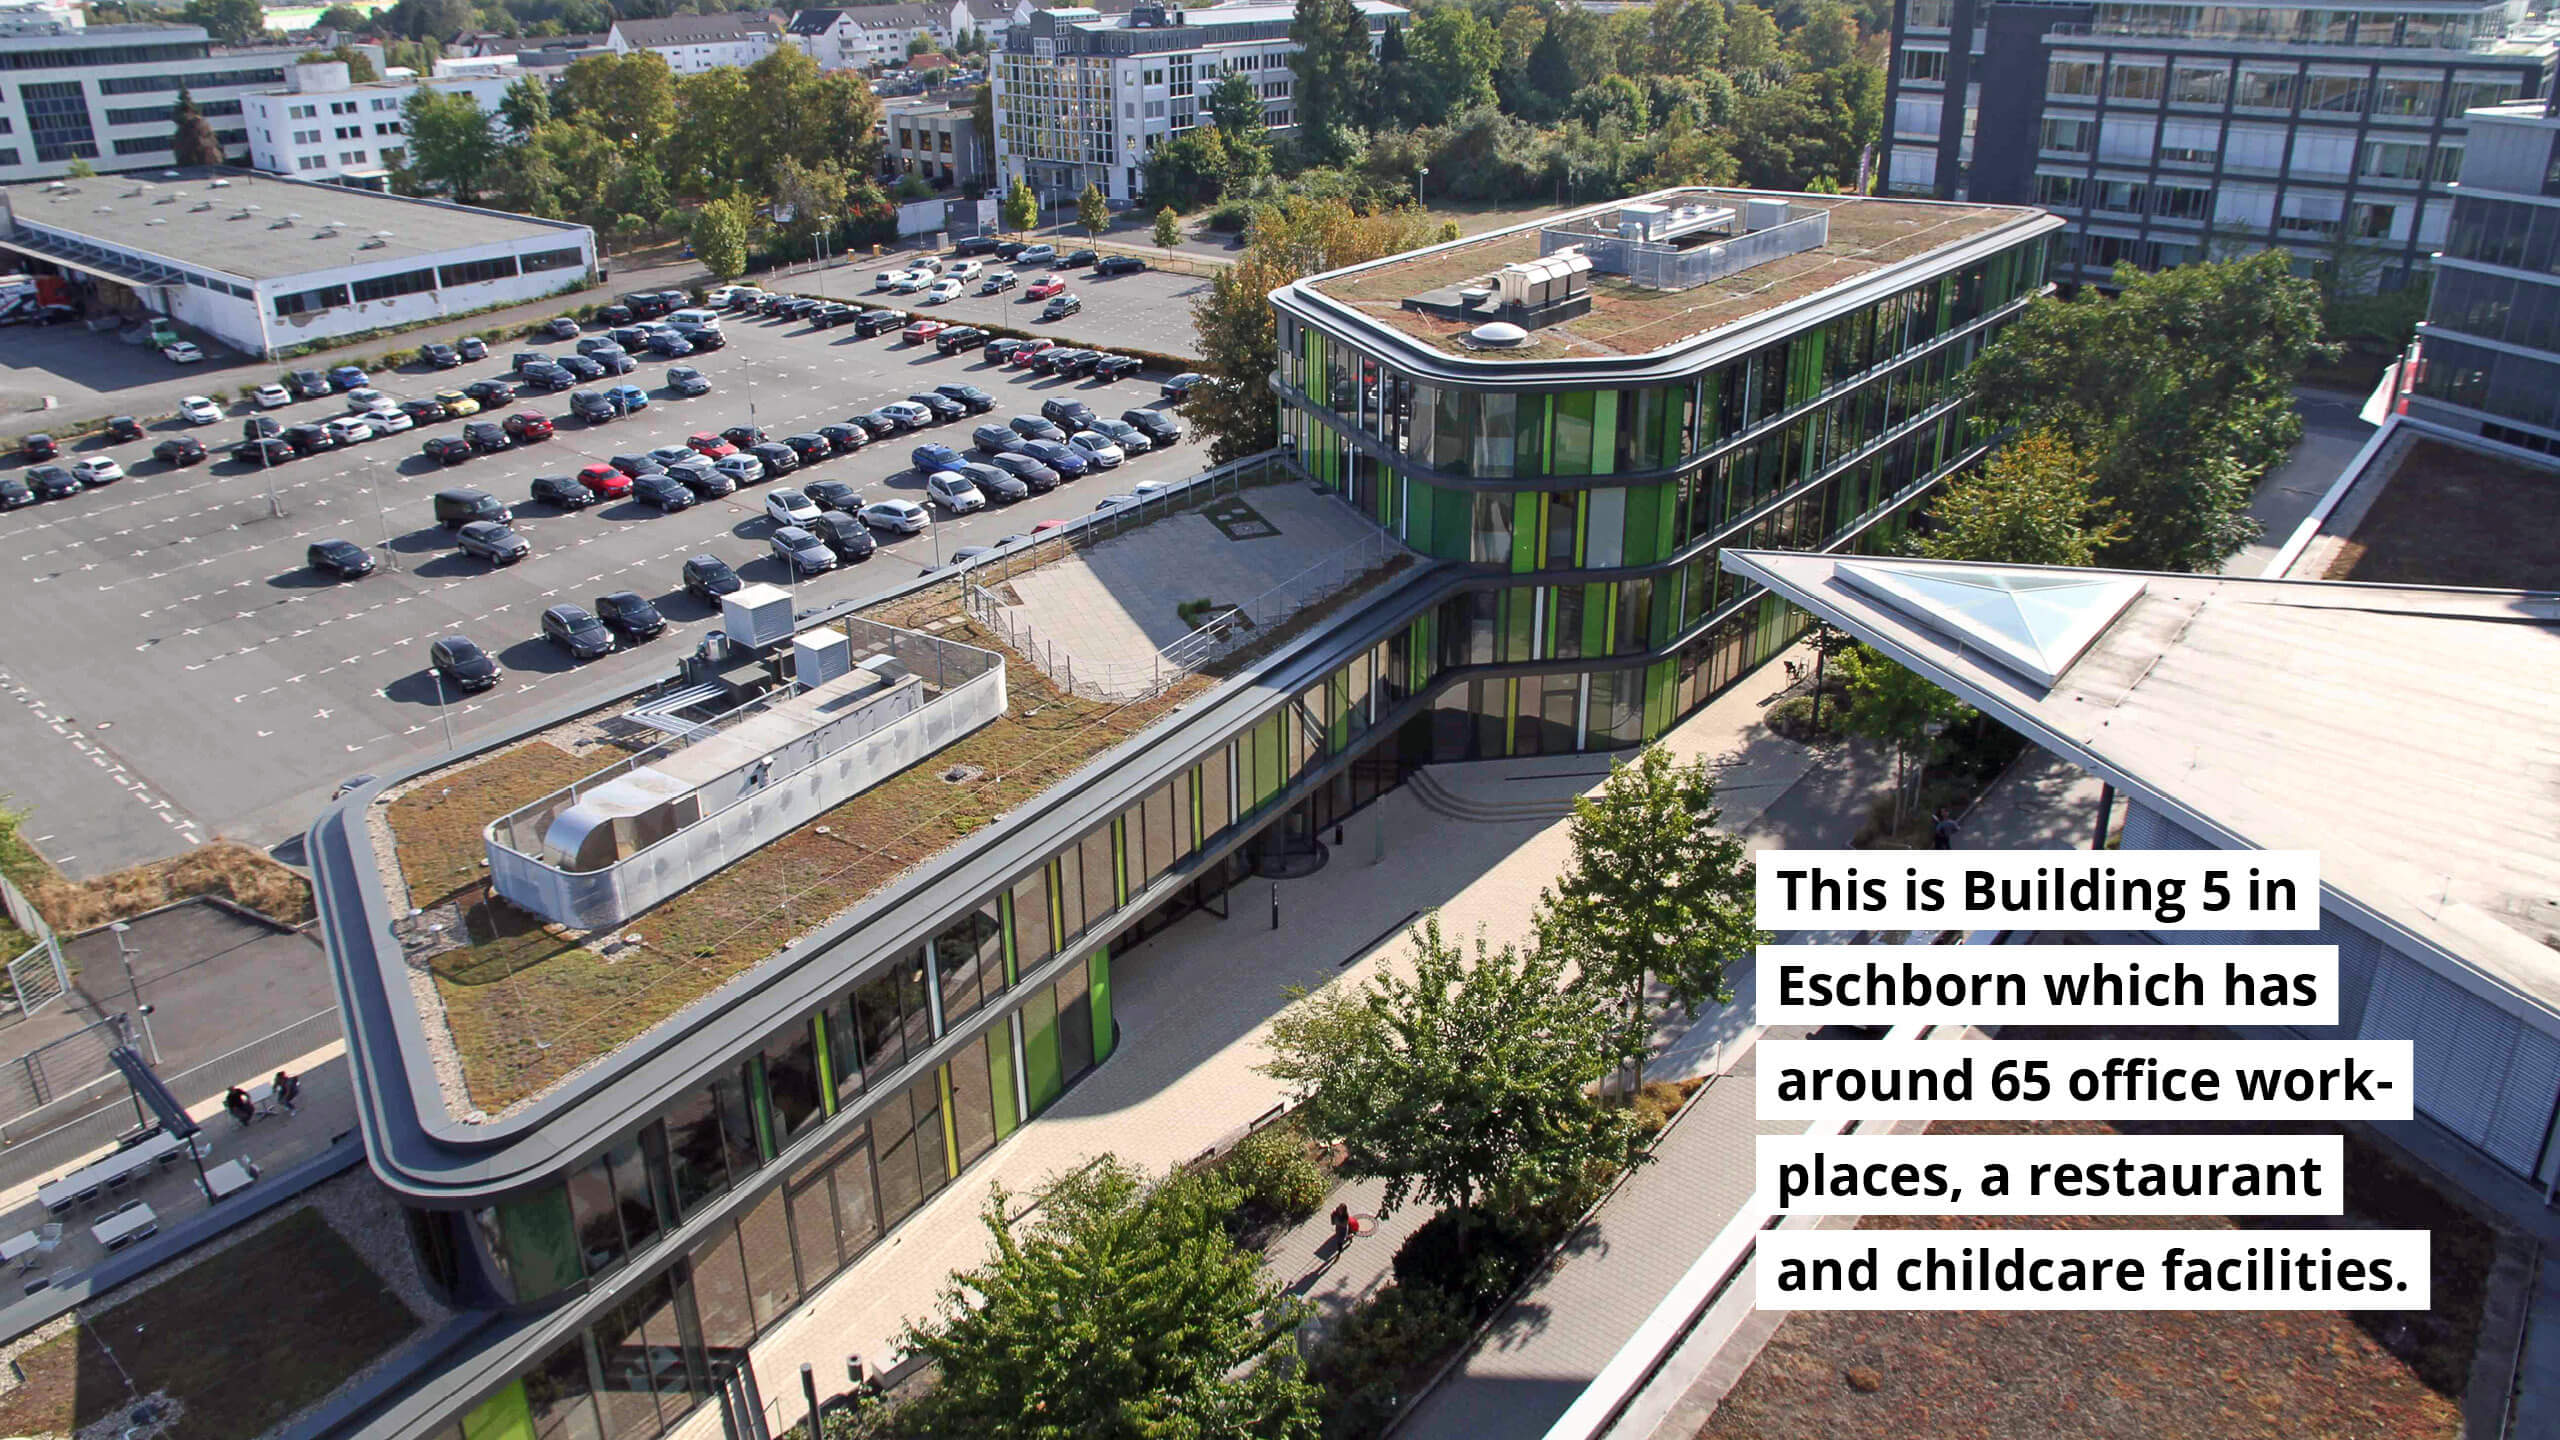 Building 5 in Eschborn has around 65 office workplaces, a restaurant and childcare facilities.